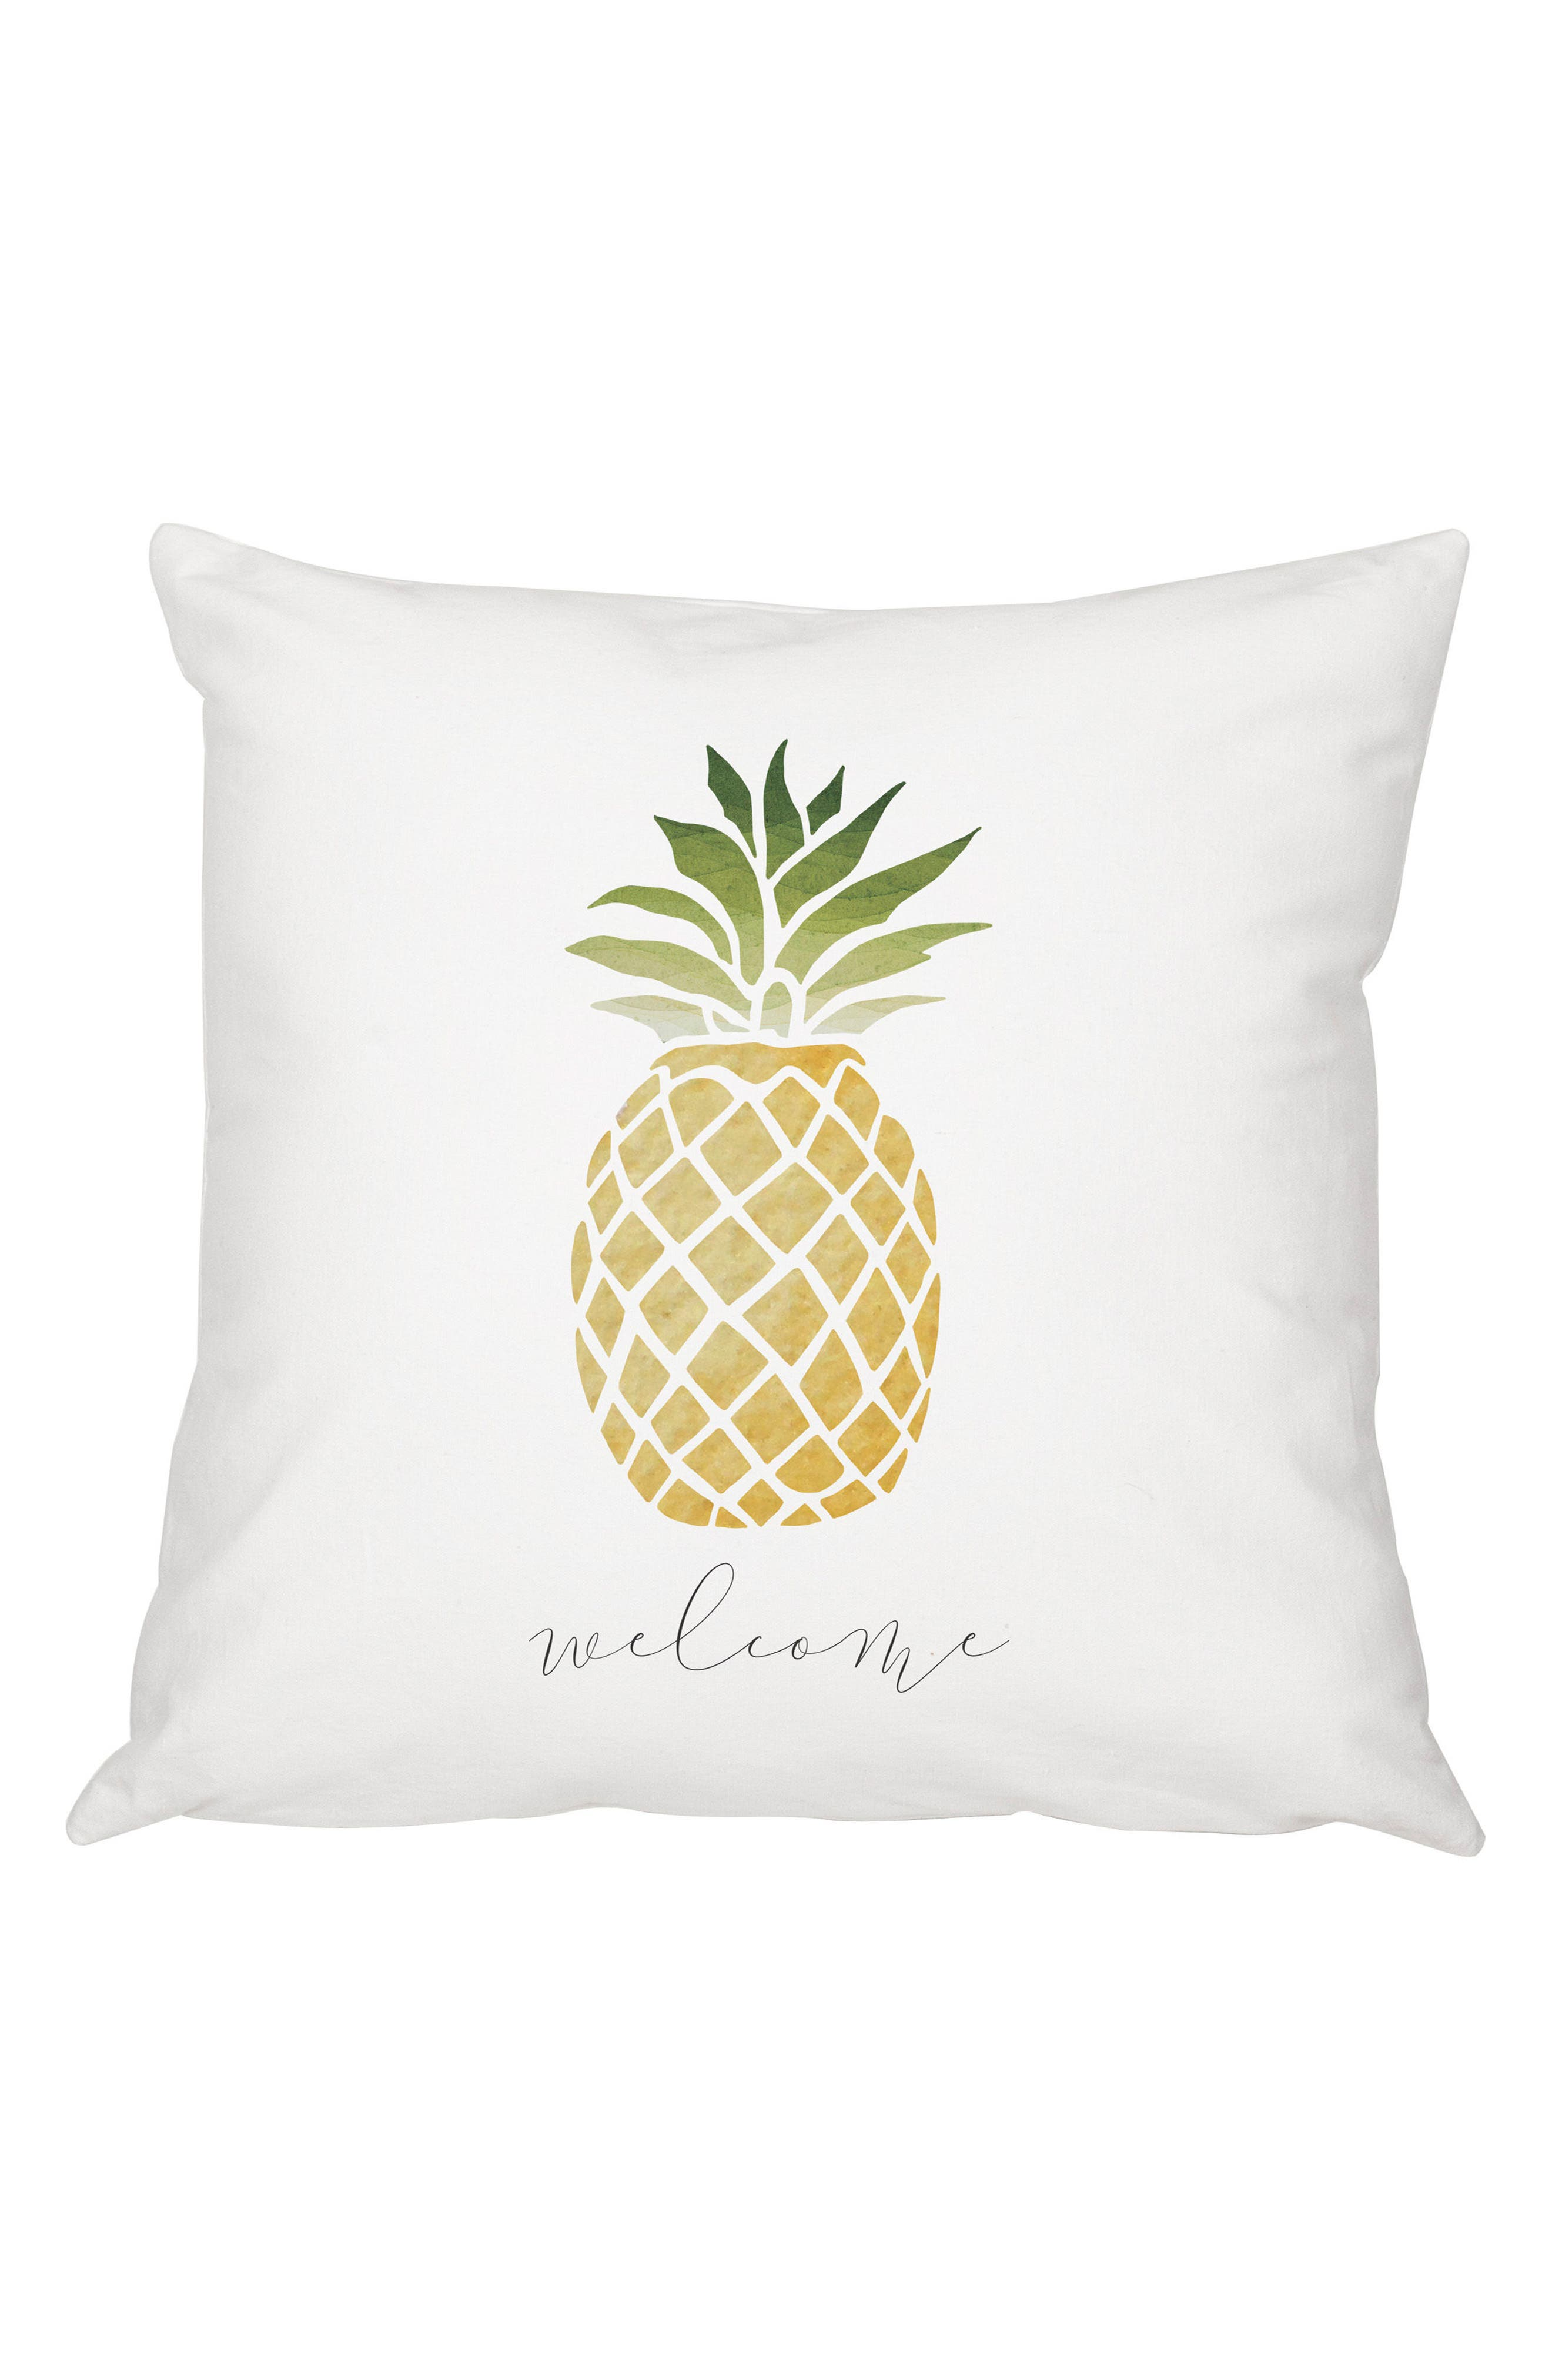 Pineapple Accent Pillow,                             Main thumbnail 1, color,                             100